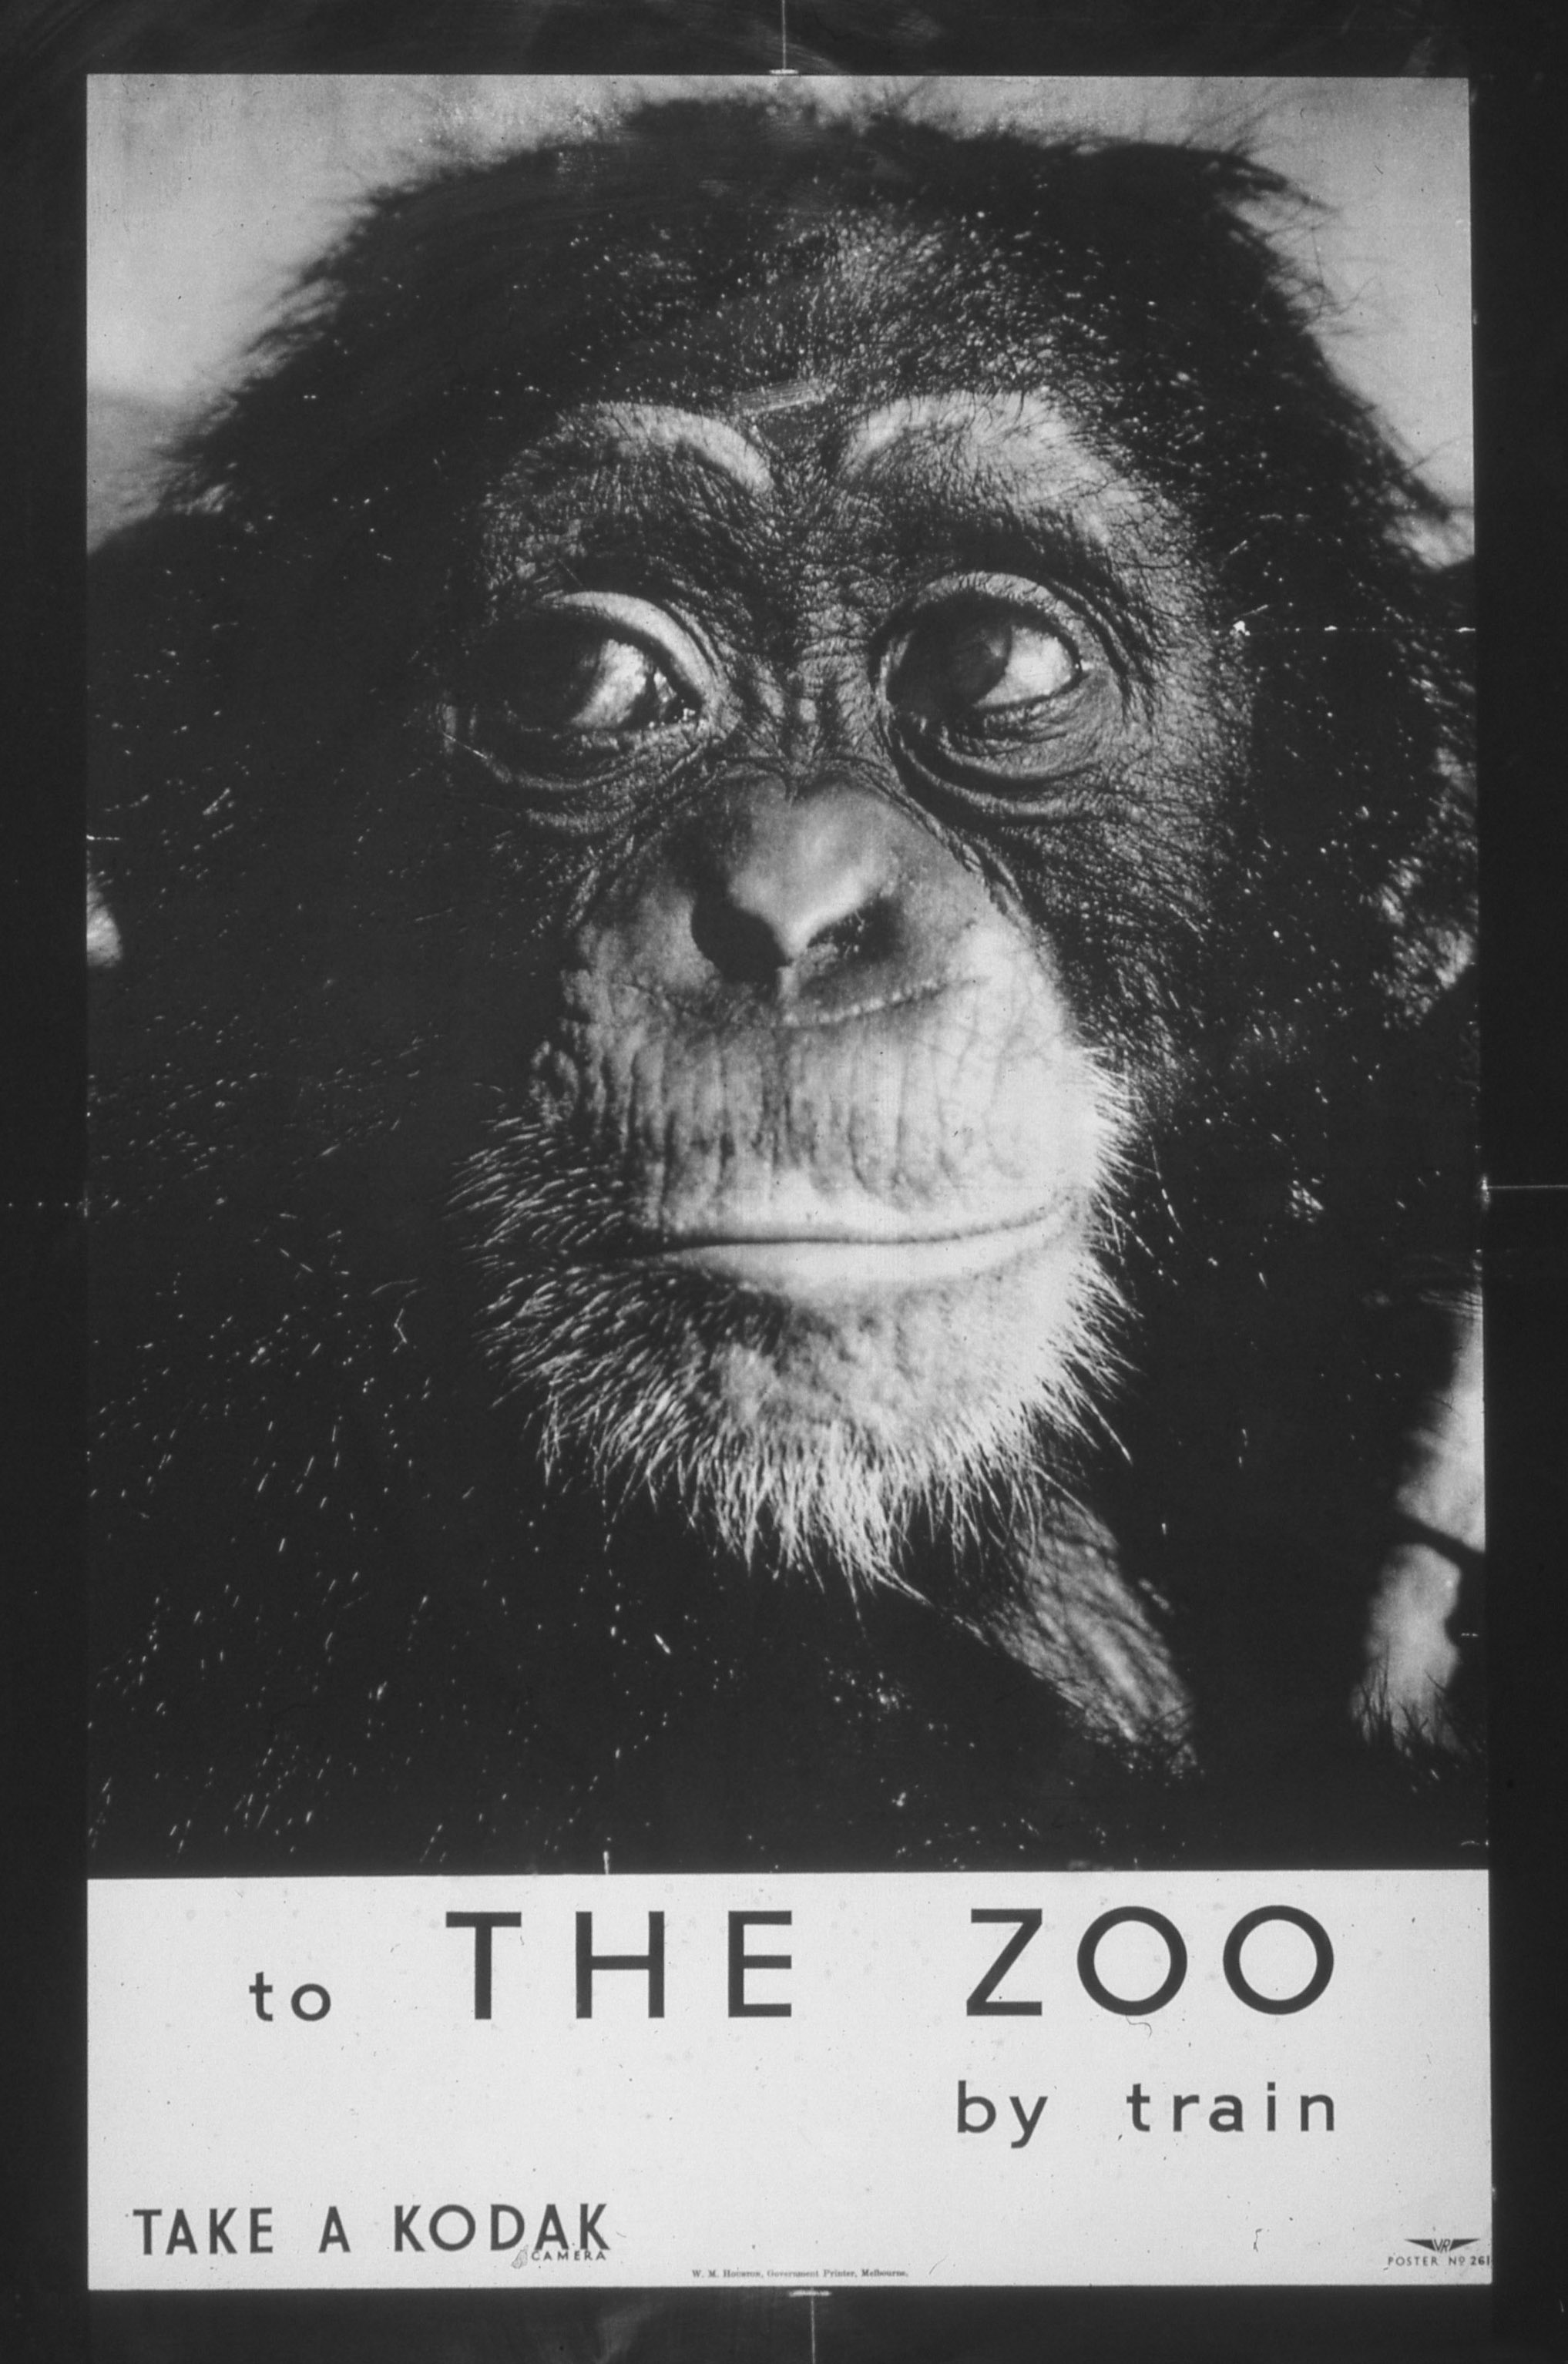 To the Zoo by Train 1950s poster